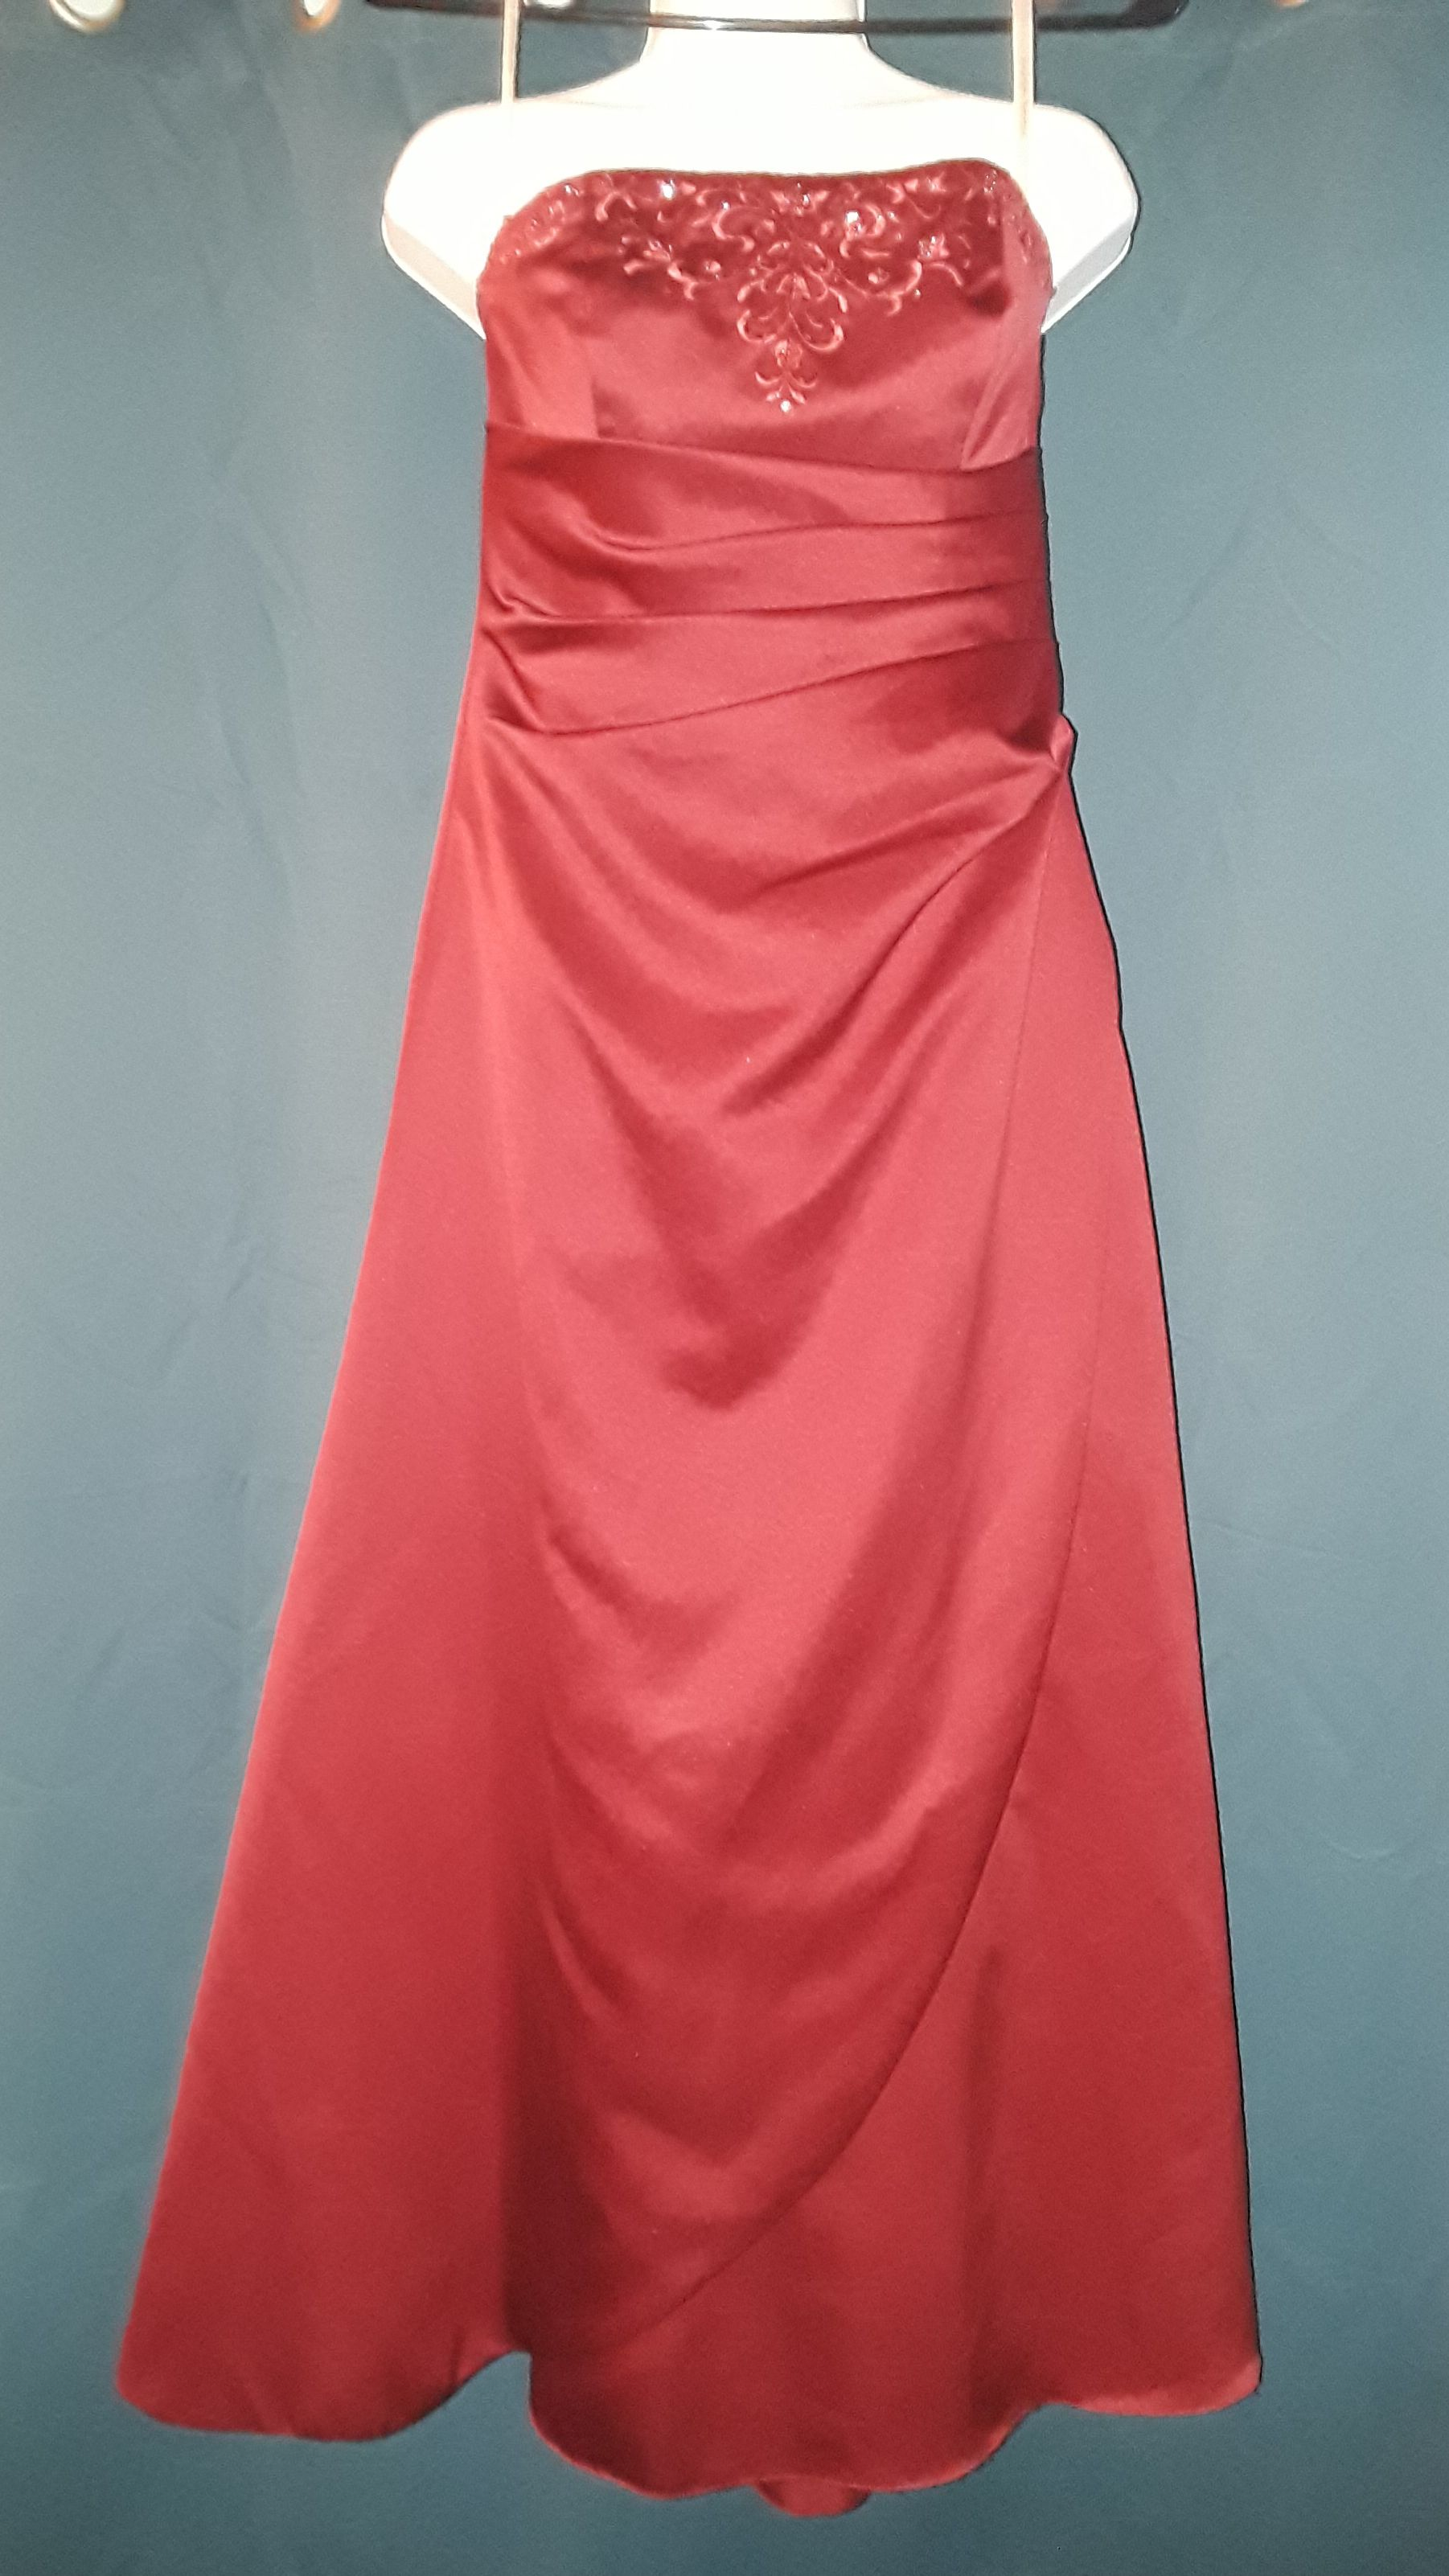 Maroon / red Prom Dress size 4